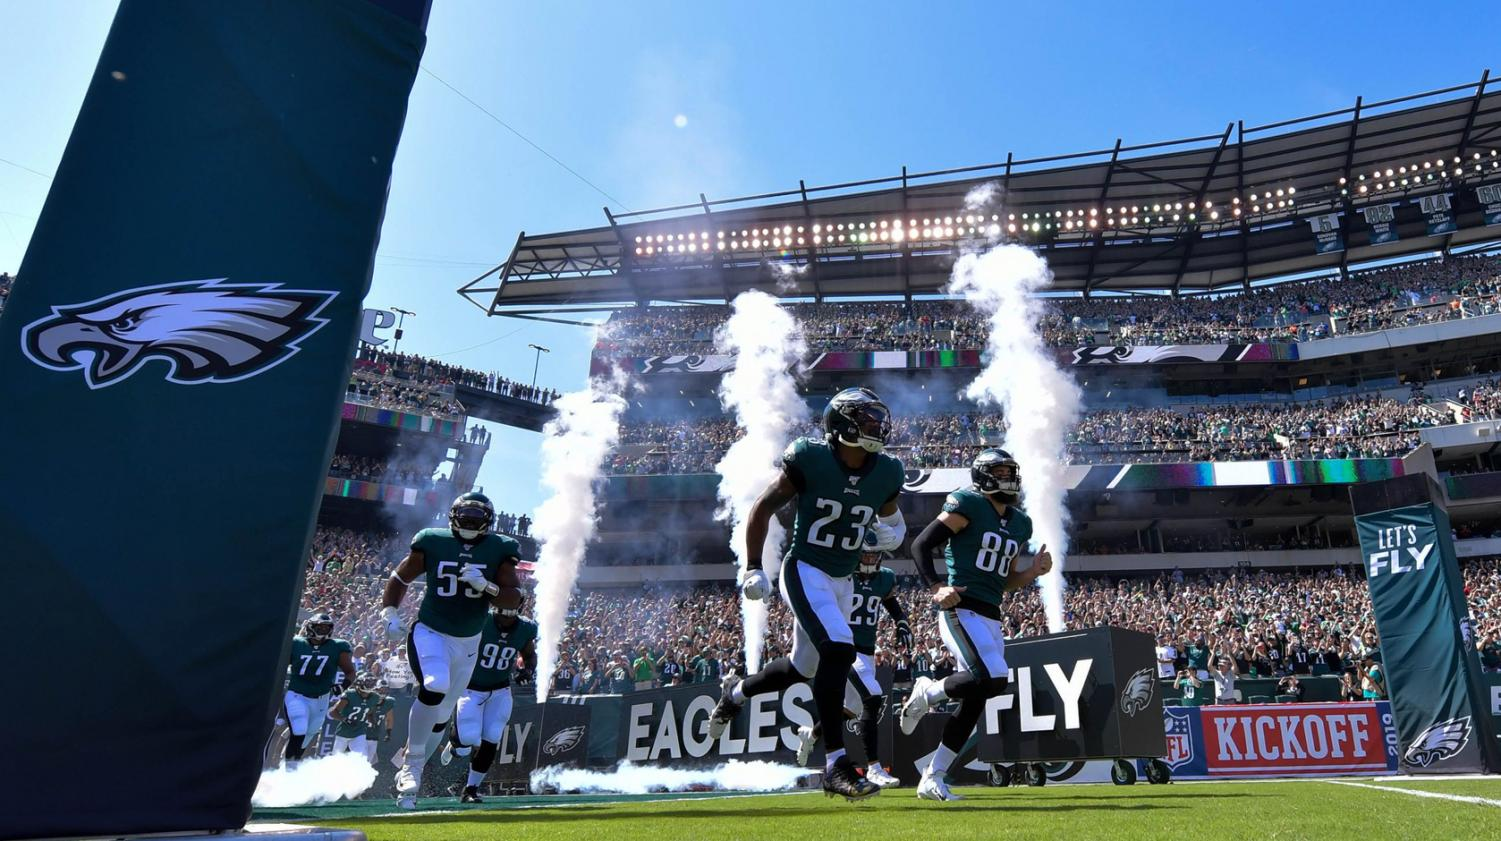 The Philadelphia Eagles fly onto the field ready to kickoff game day against the Washington Redskins.